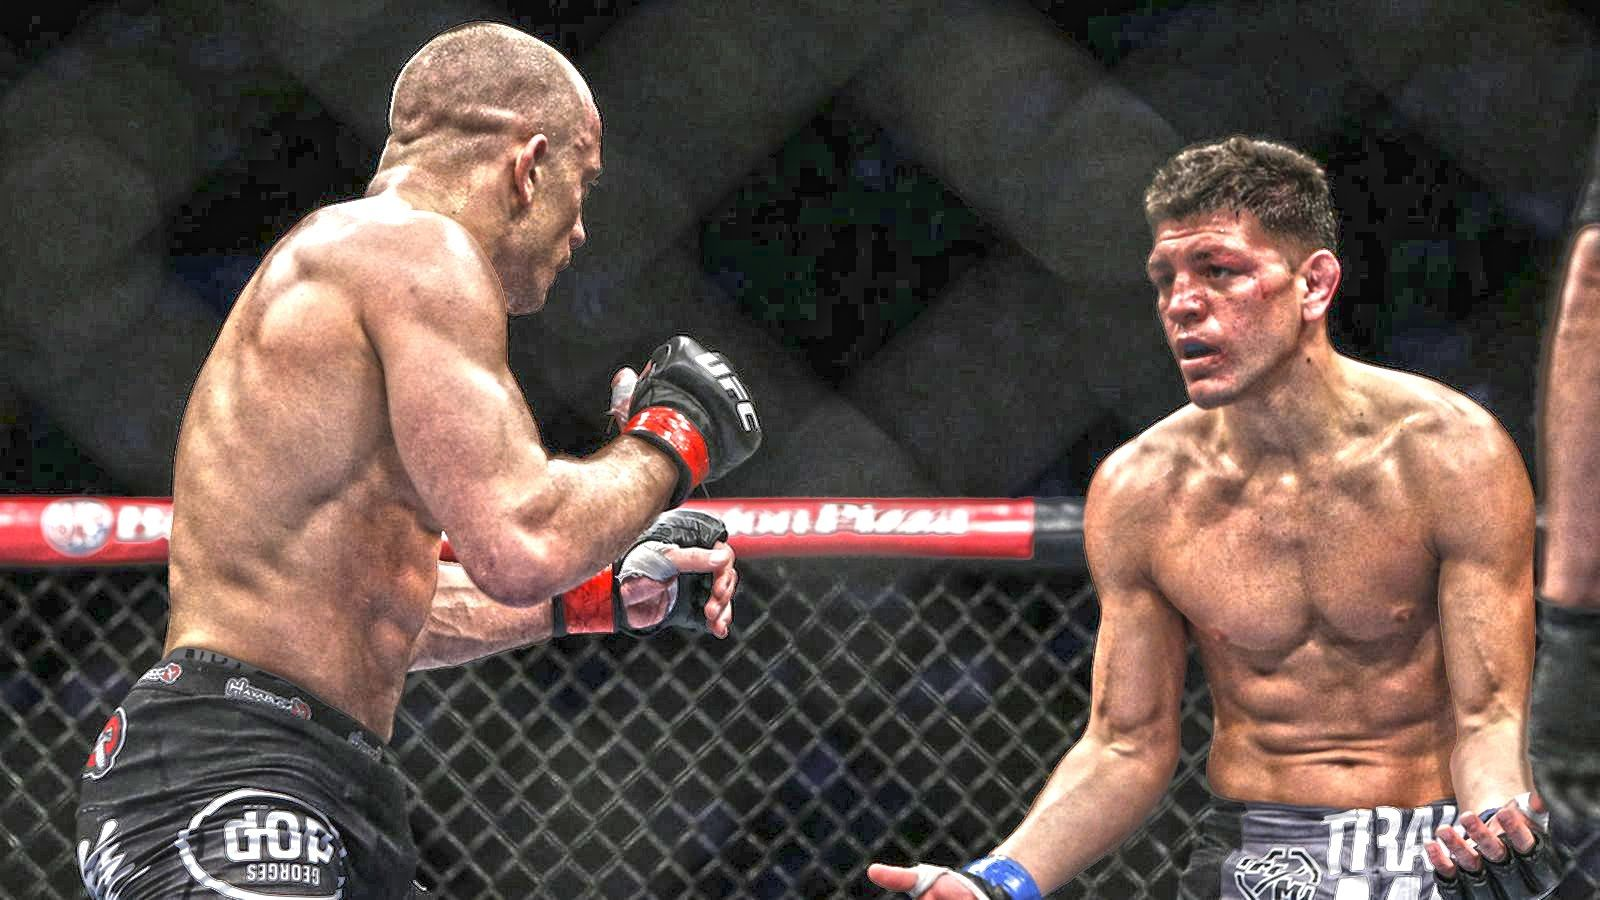 The undisputed UFC Welterweight Champion Georges St-Pierre in his long  overdue fight with Nick Diaz at UFC Micks.